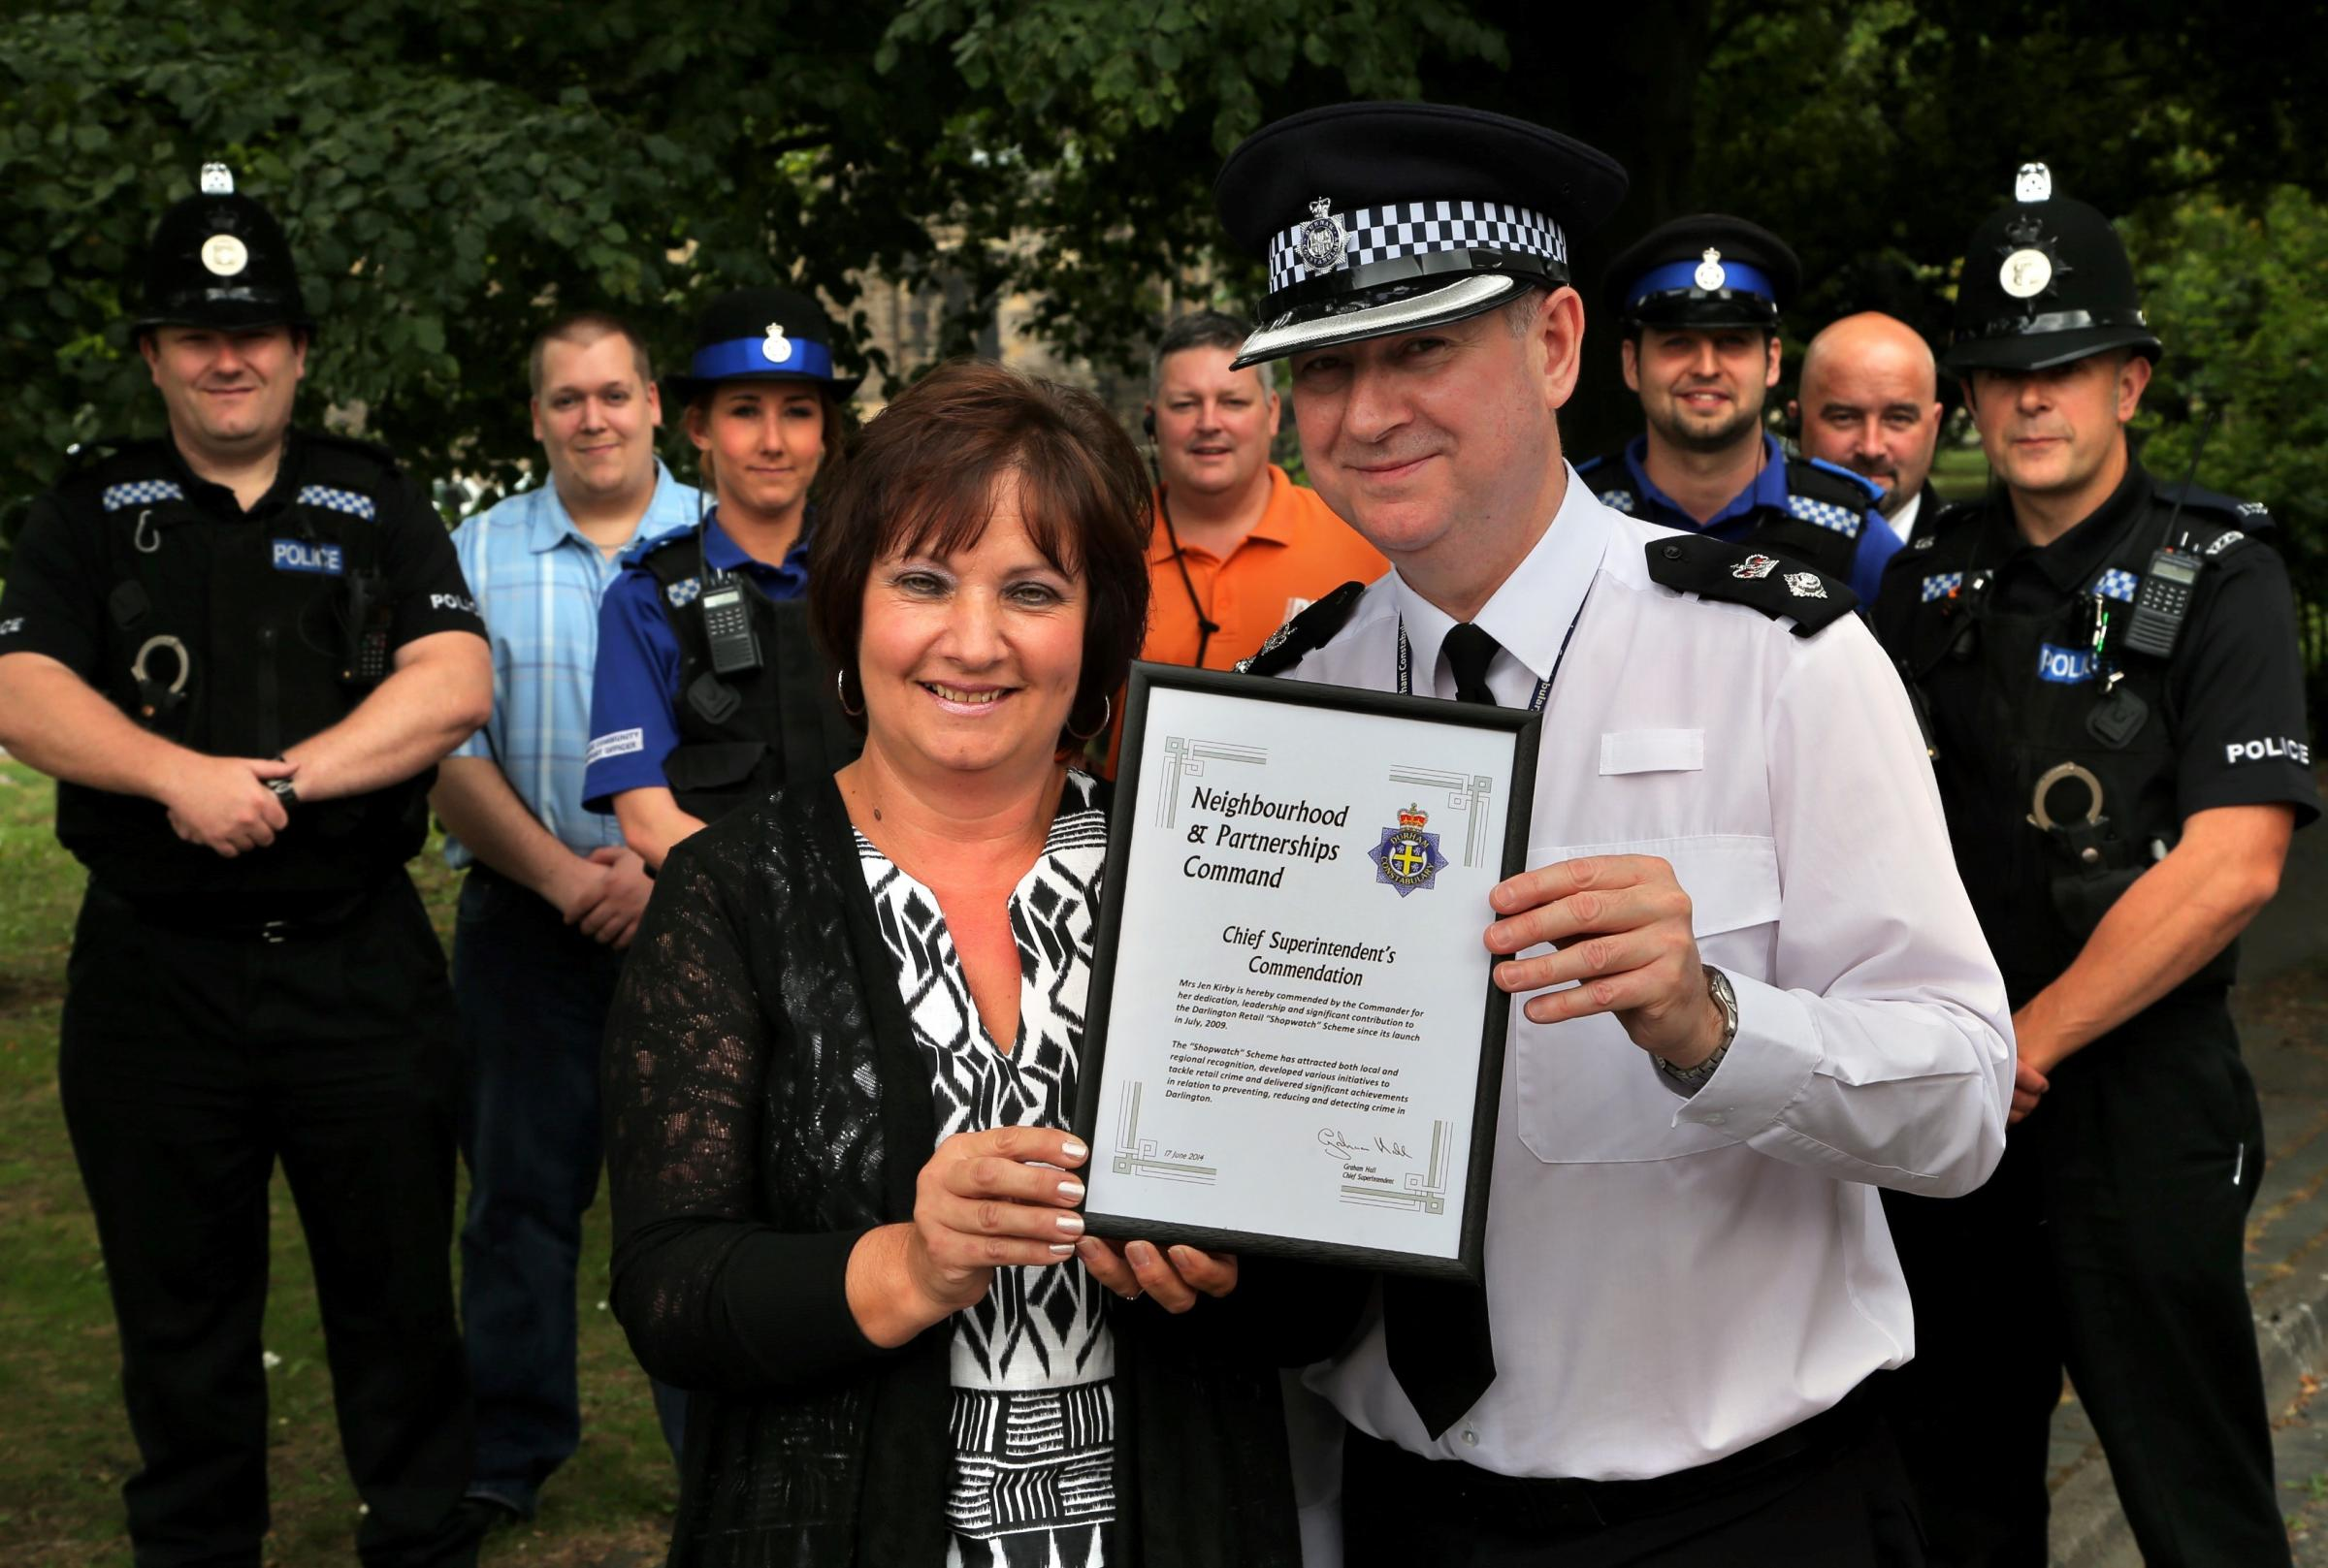 Crime-fighting businesswoman honoured by police